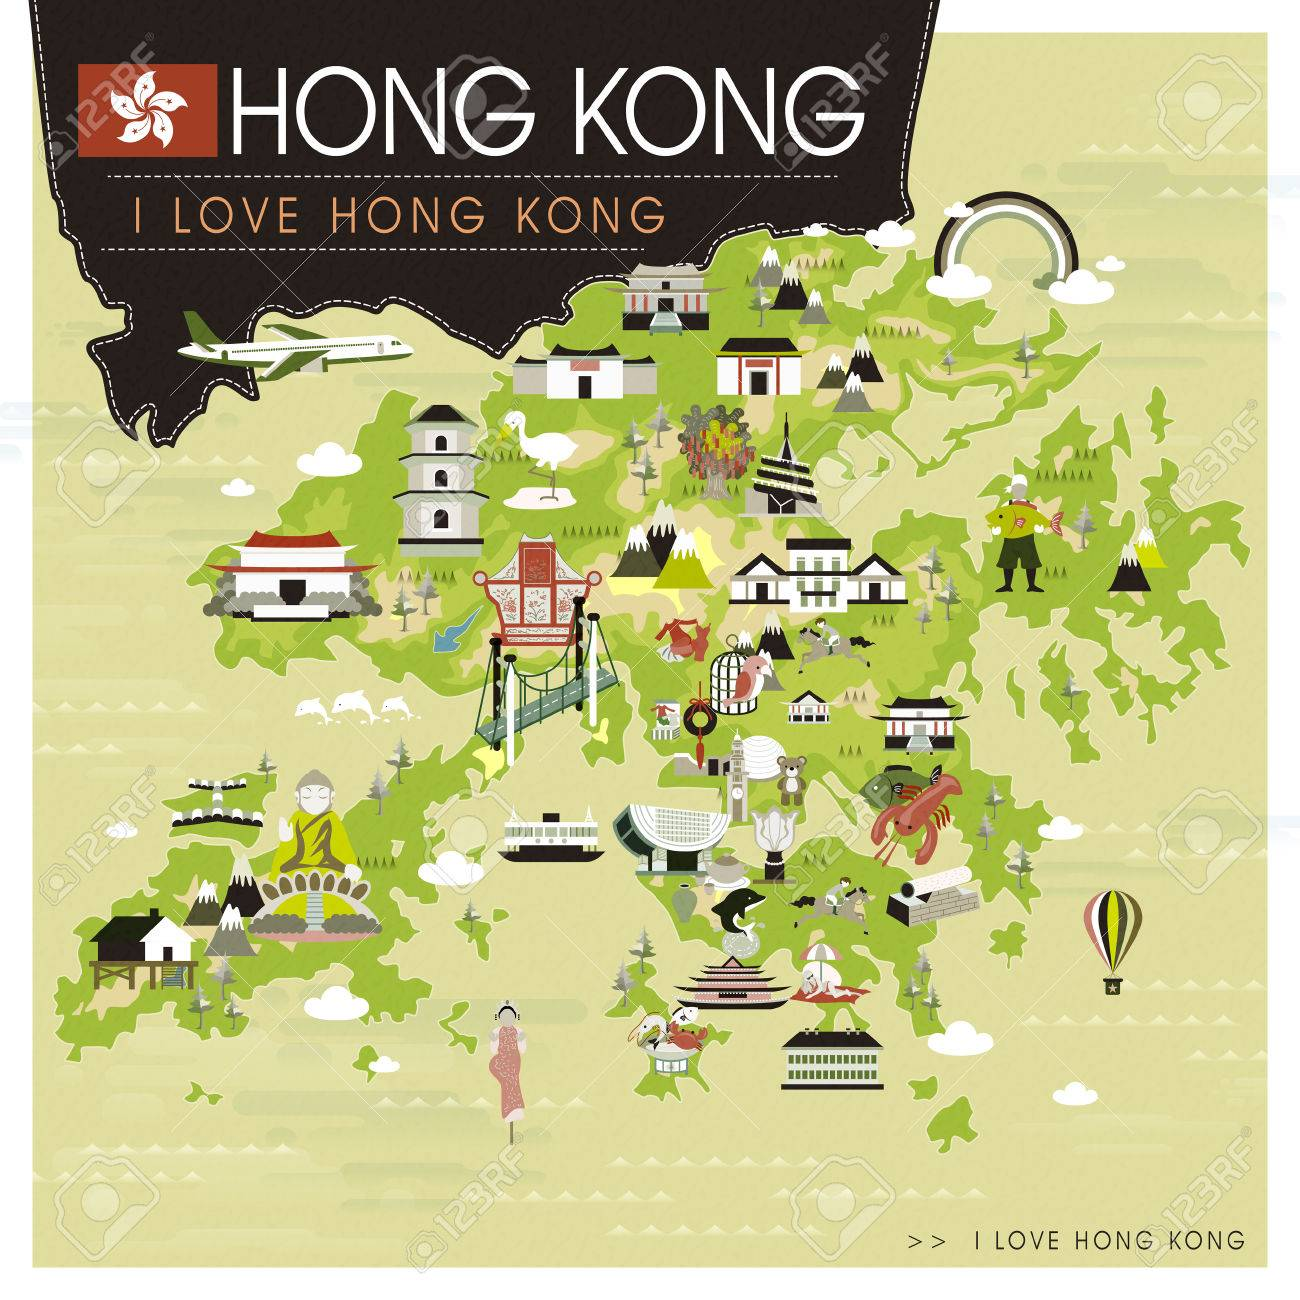 Hong Kong Travel Map With Attractions In Flat Design Royalty Free